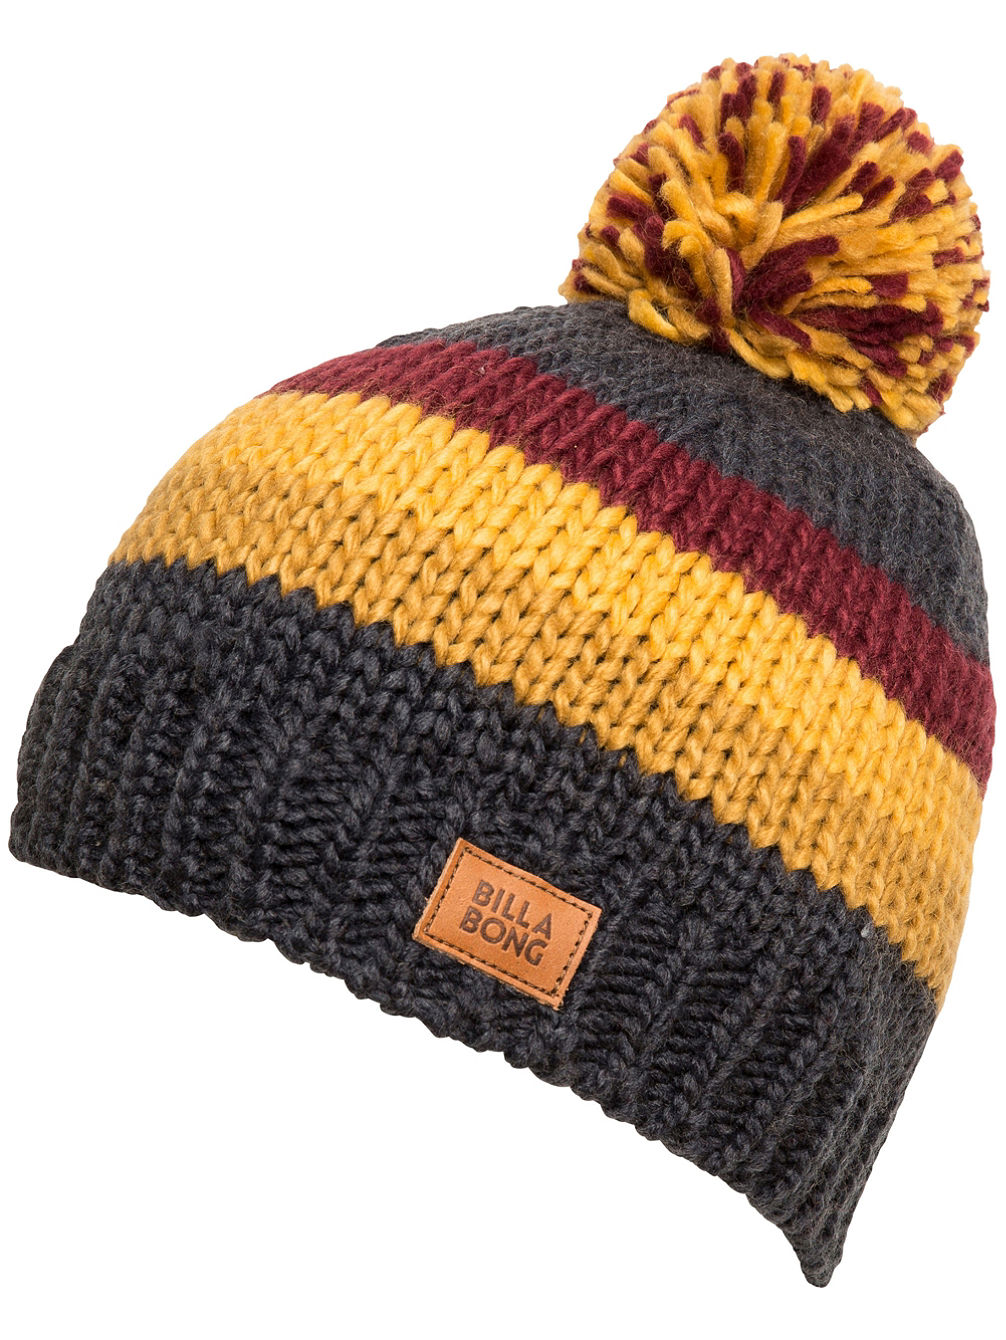 76f2caea196 Buy Billabong Mayfield Beanie Youth online at blue-tomato.com